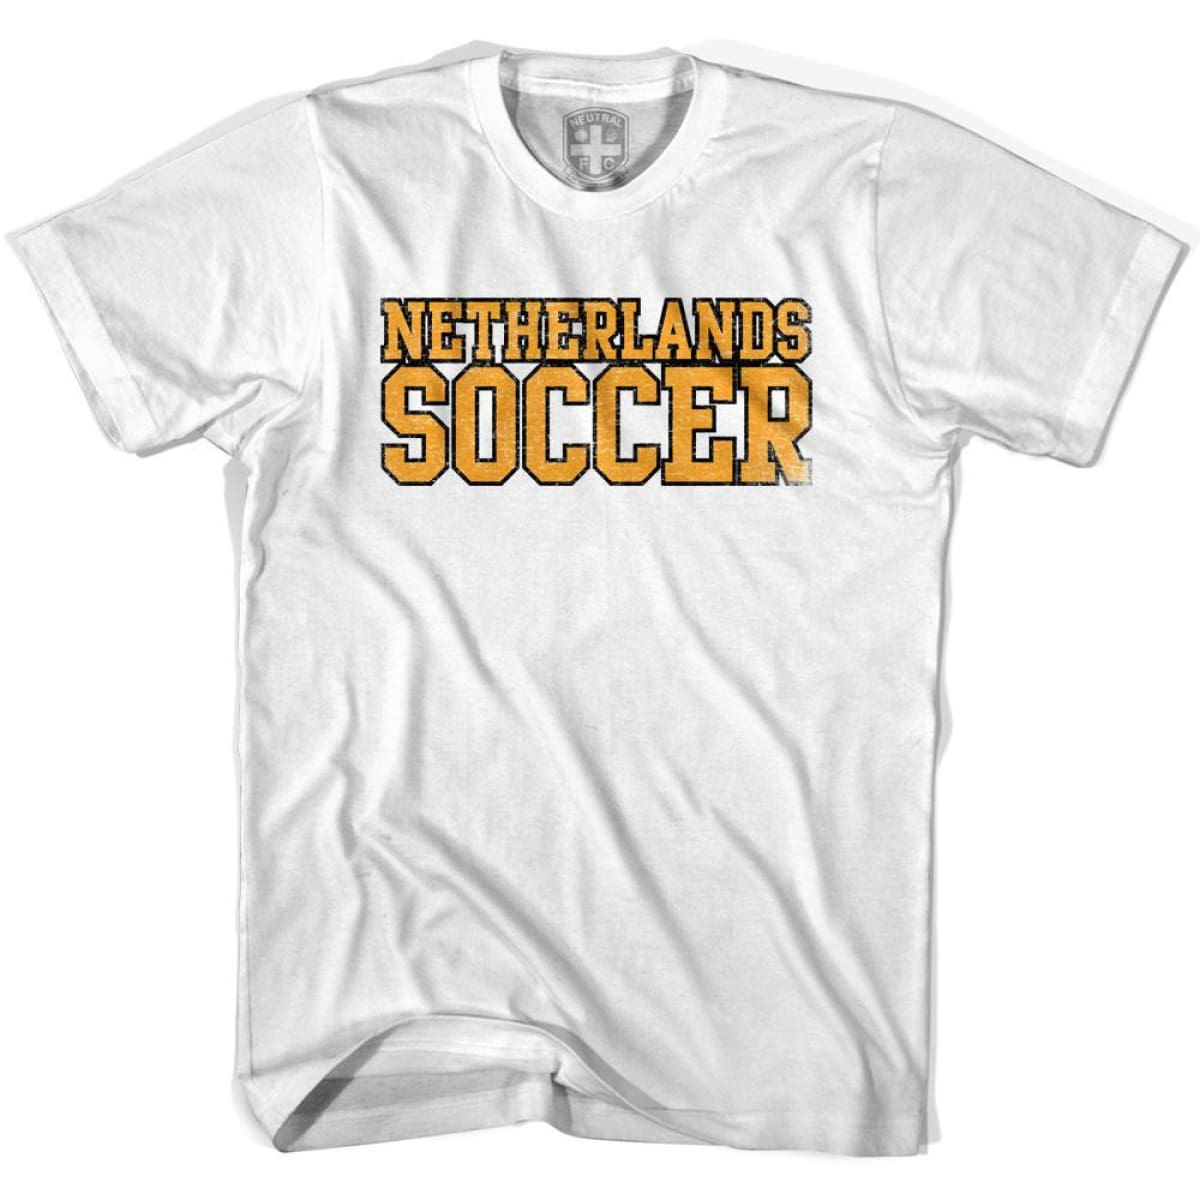 Netherlands Soccer Nations World Cup T-shirt - White / Youth X-Small - Ultras Soccer T-shirts